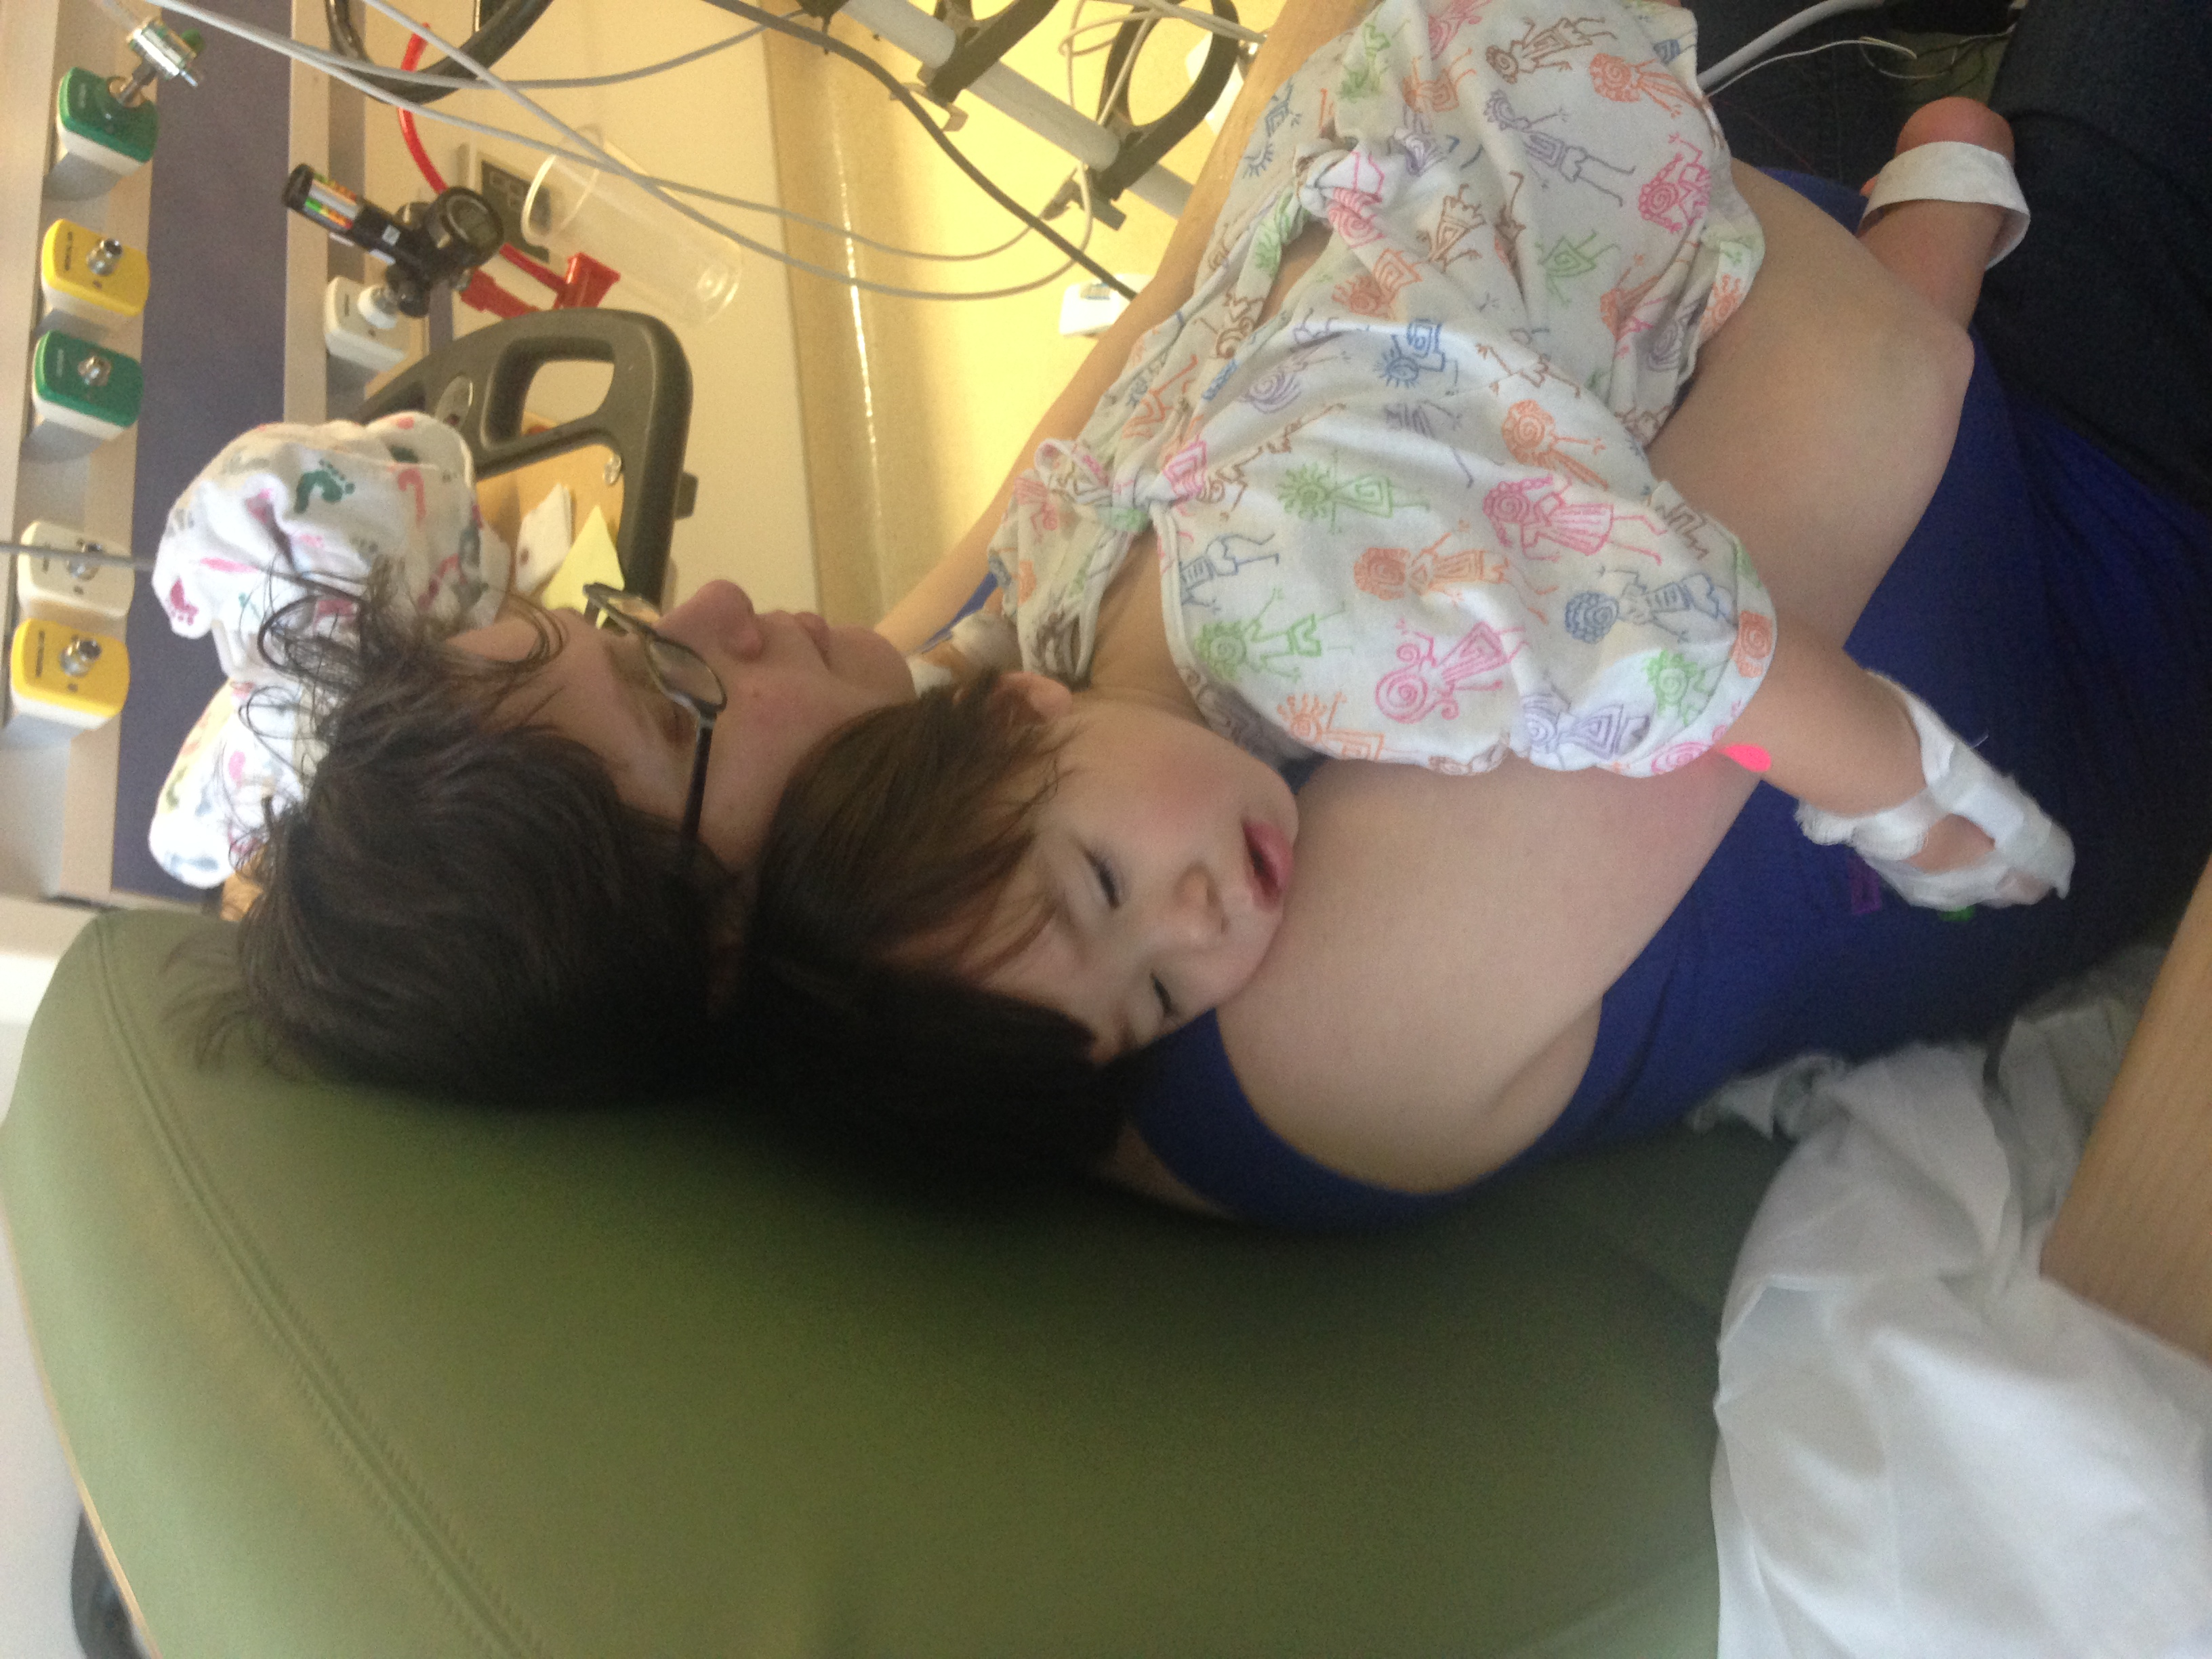 Beth and Jack in the Hospital